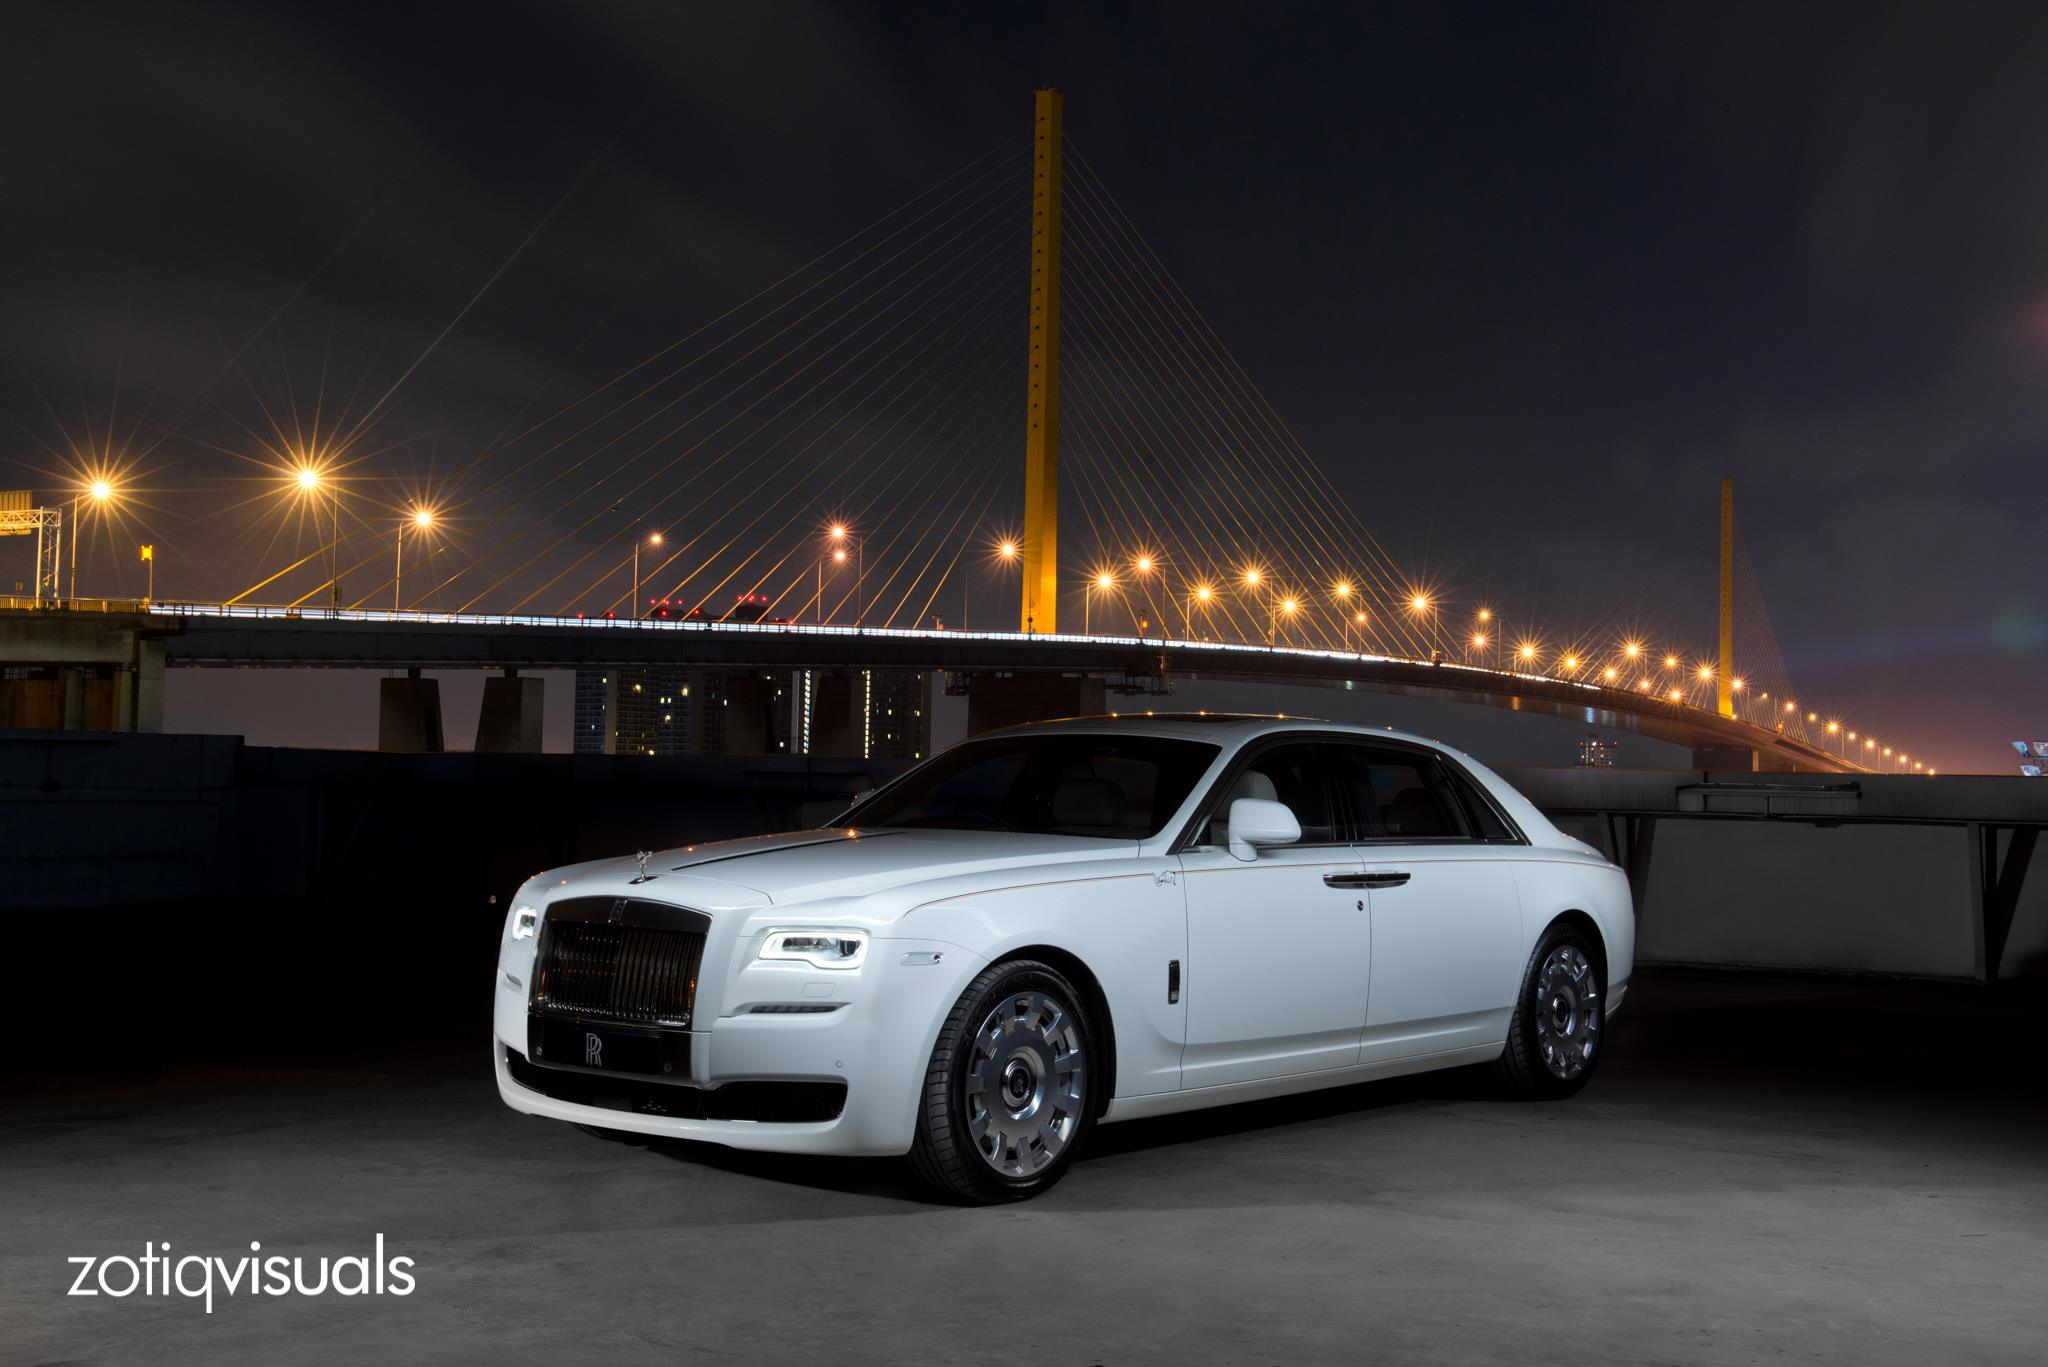 1 Of 1 Rolls Royce Ghost Ewb Kochamongkol For Thailand